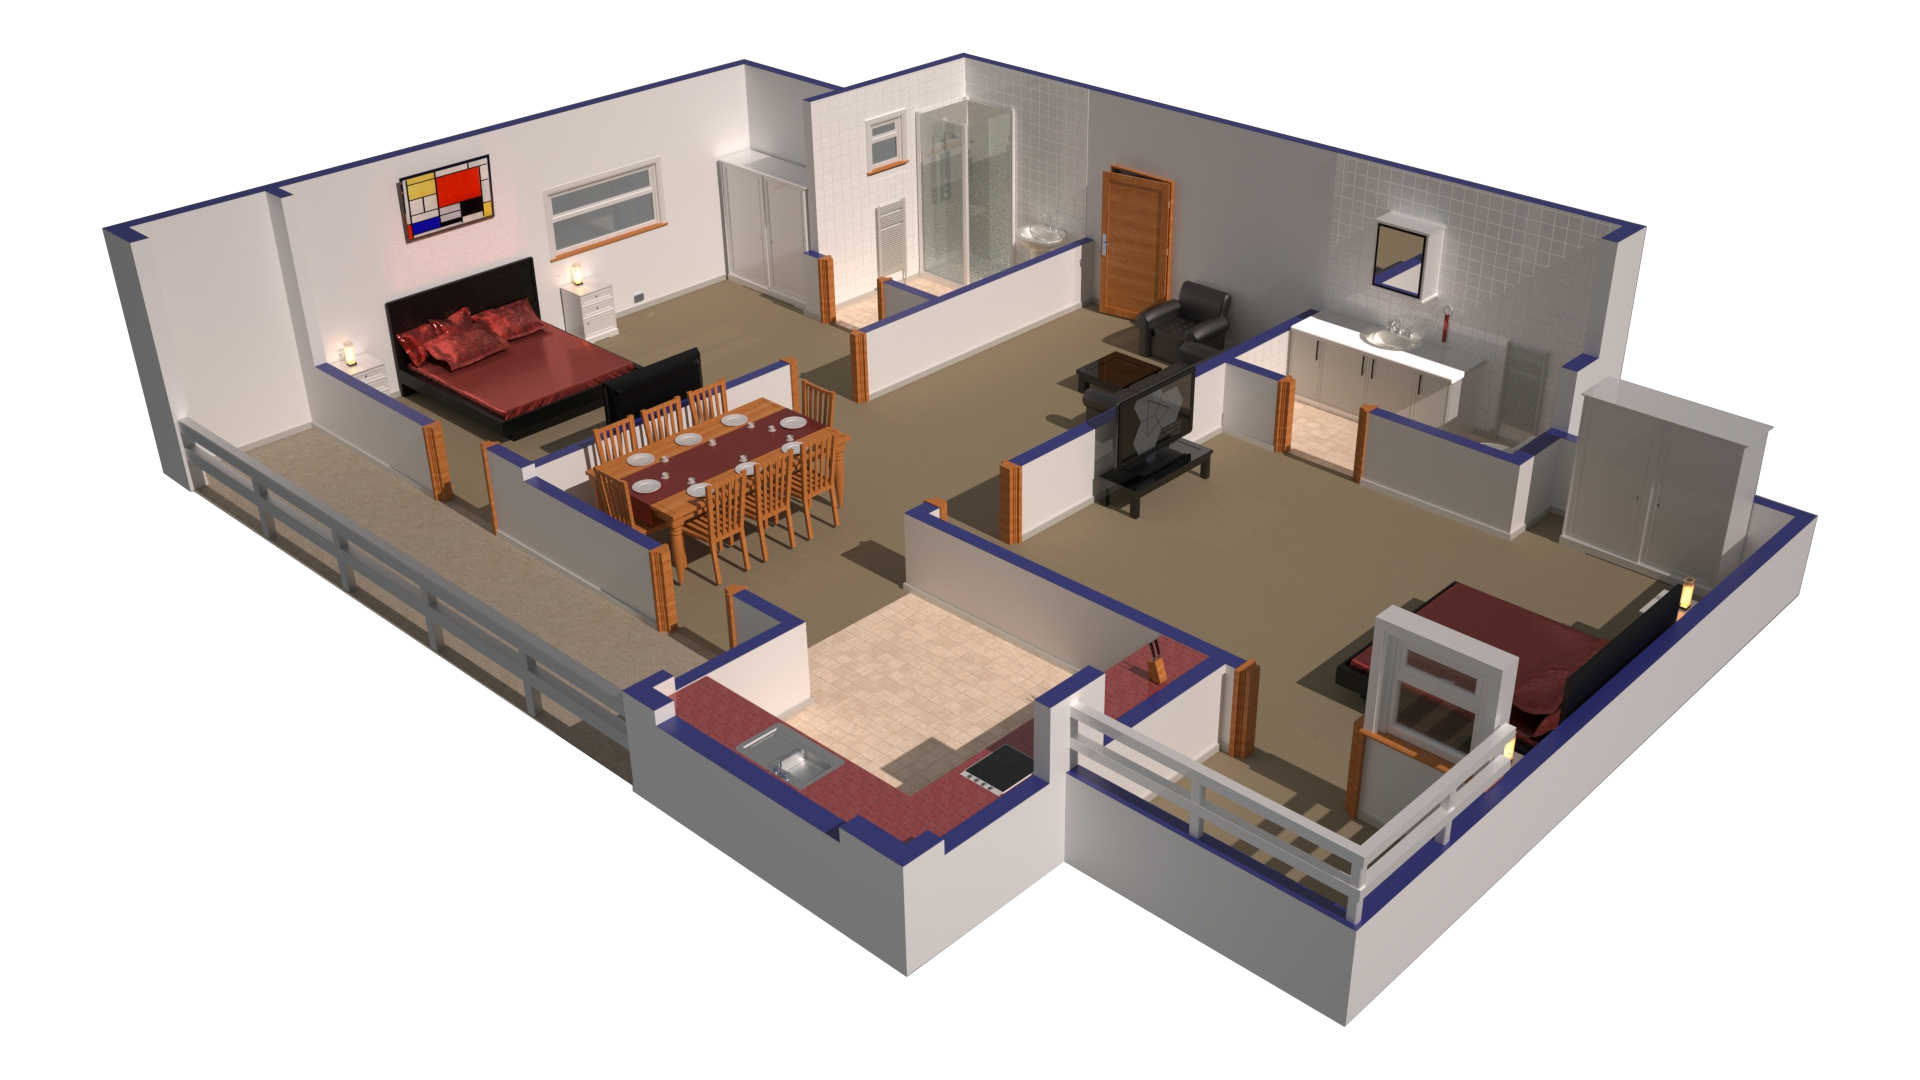 hive-rd-house-floorplan-render